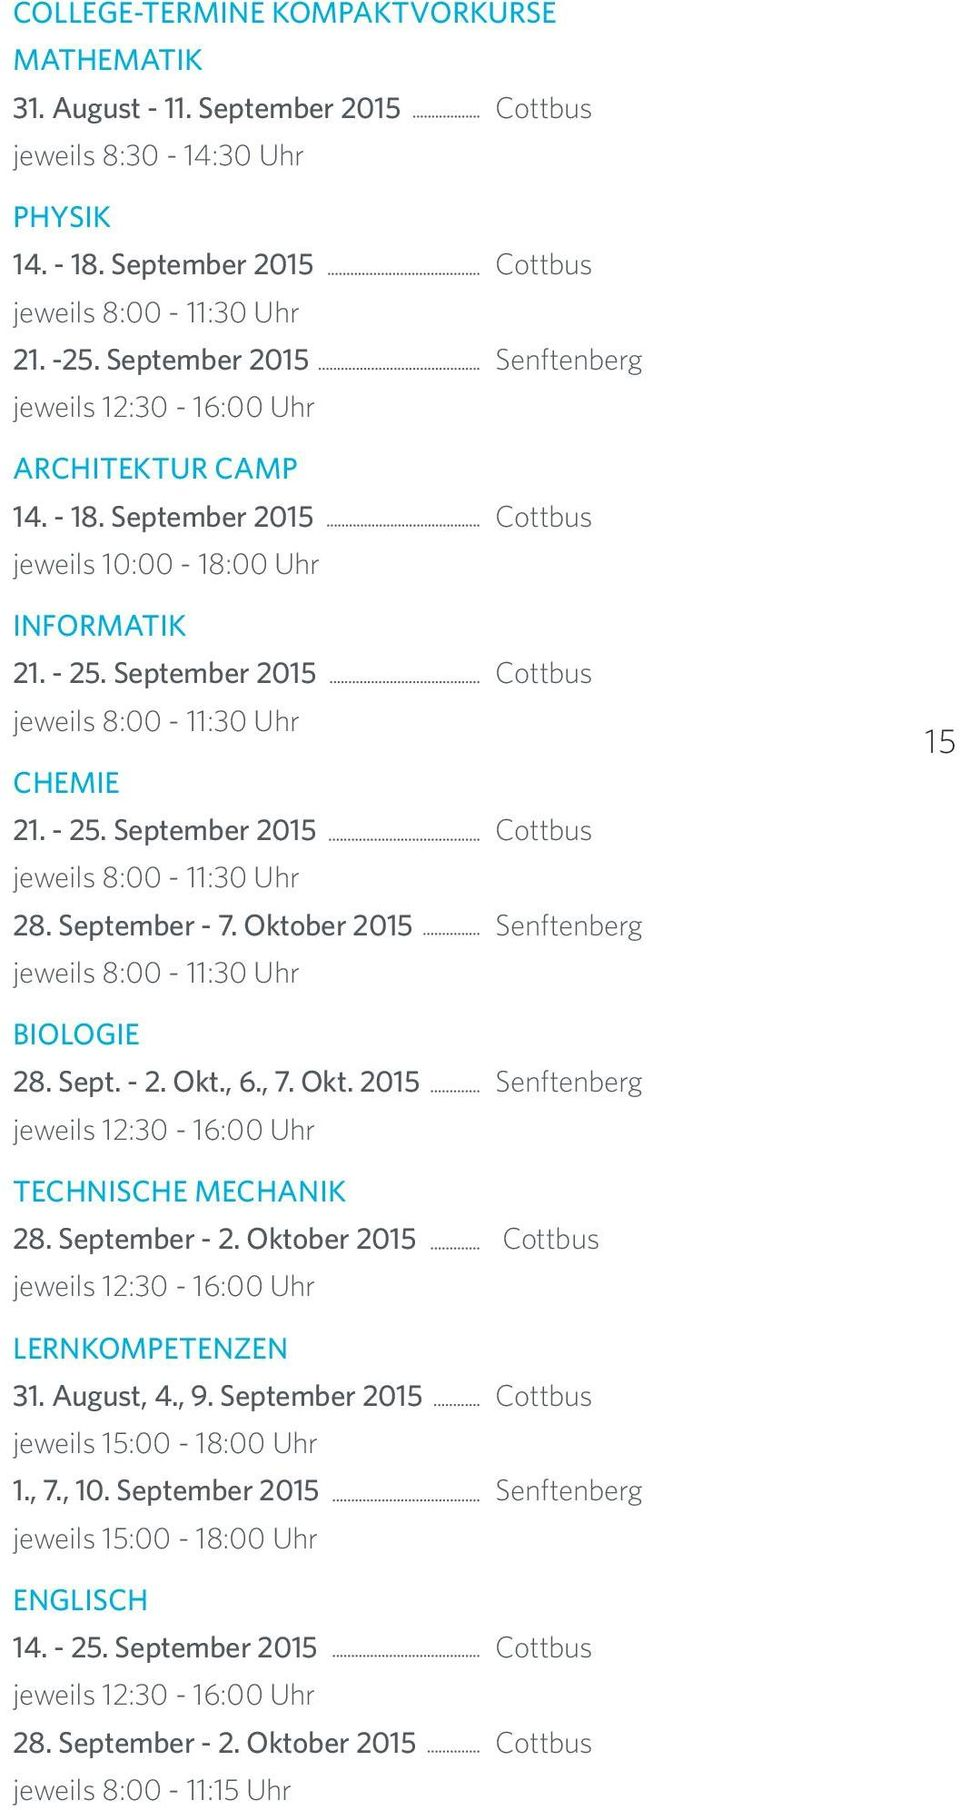 September 2015 Cottbus jeweils 8:00-11:30 Uhr CHEMIE 21. - 25. September 2015 Cottbus jeweils 8:00-11:30 Uhr 28. September - 7. Oktober 2015 Senftenberg jeweils 8:00-11:30 Uhr 15 BIOLOGIE 28. Sept. - 2. Okt., 6.